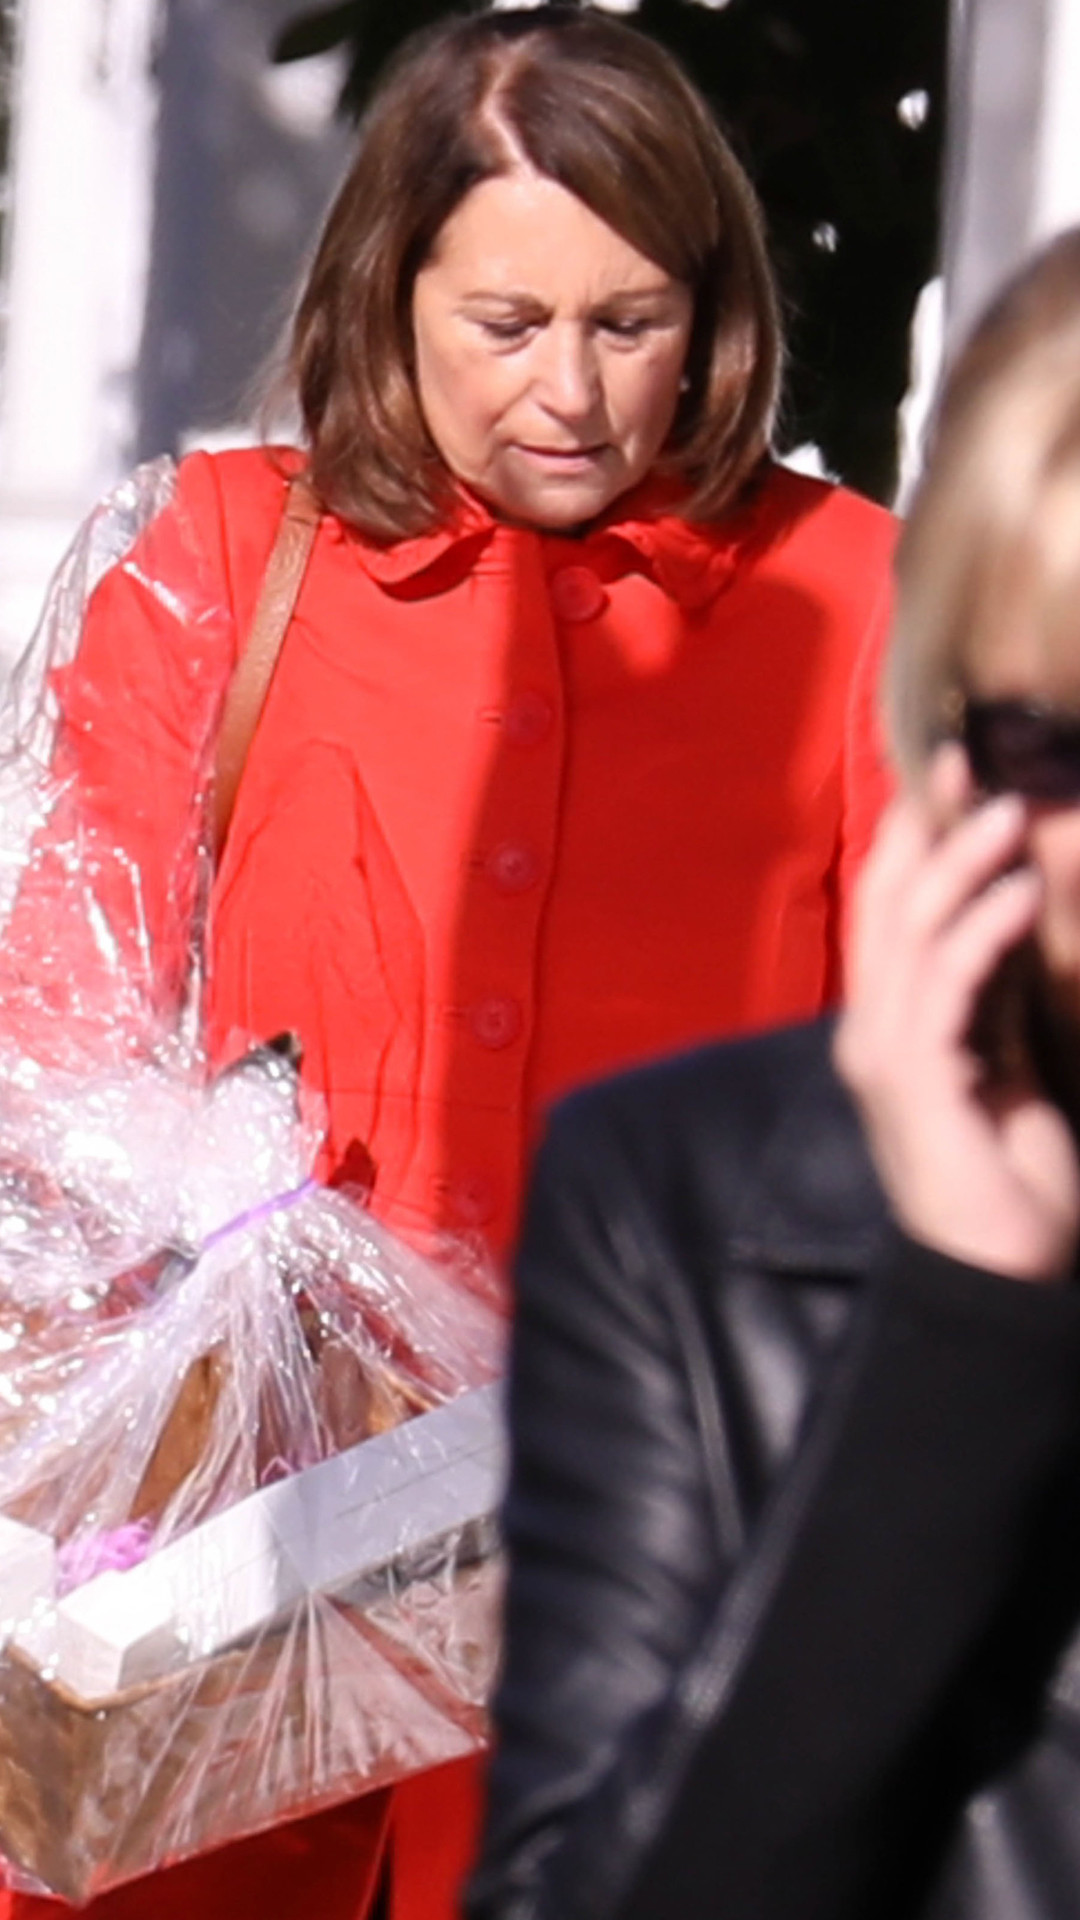 Pippa Middleton S Mom Brings Sweet Gifts For Daughter S